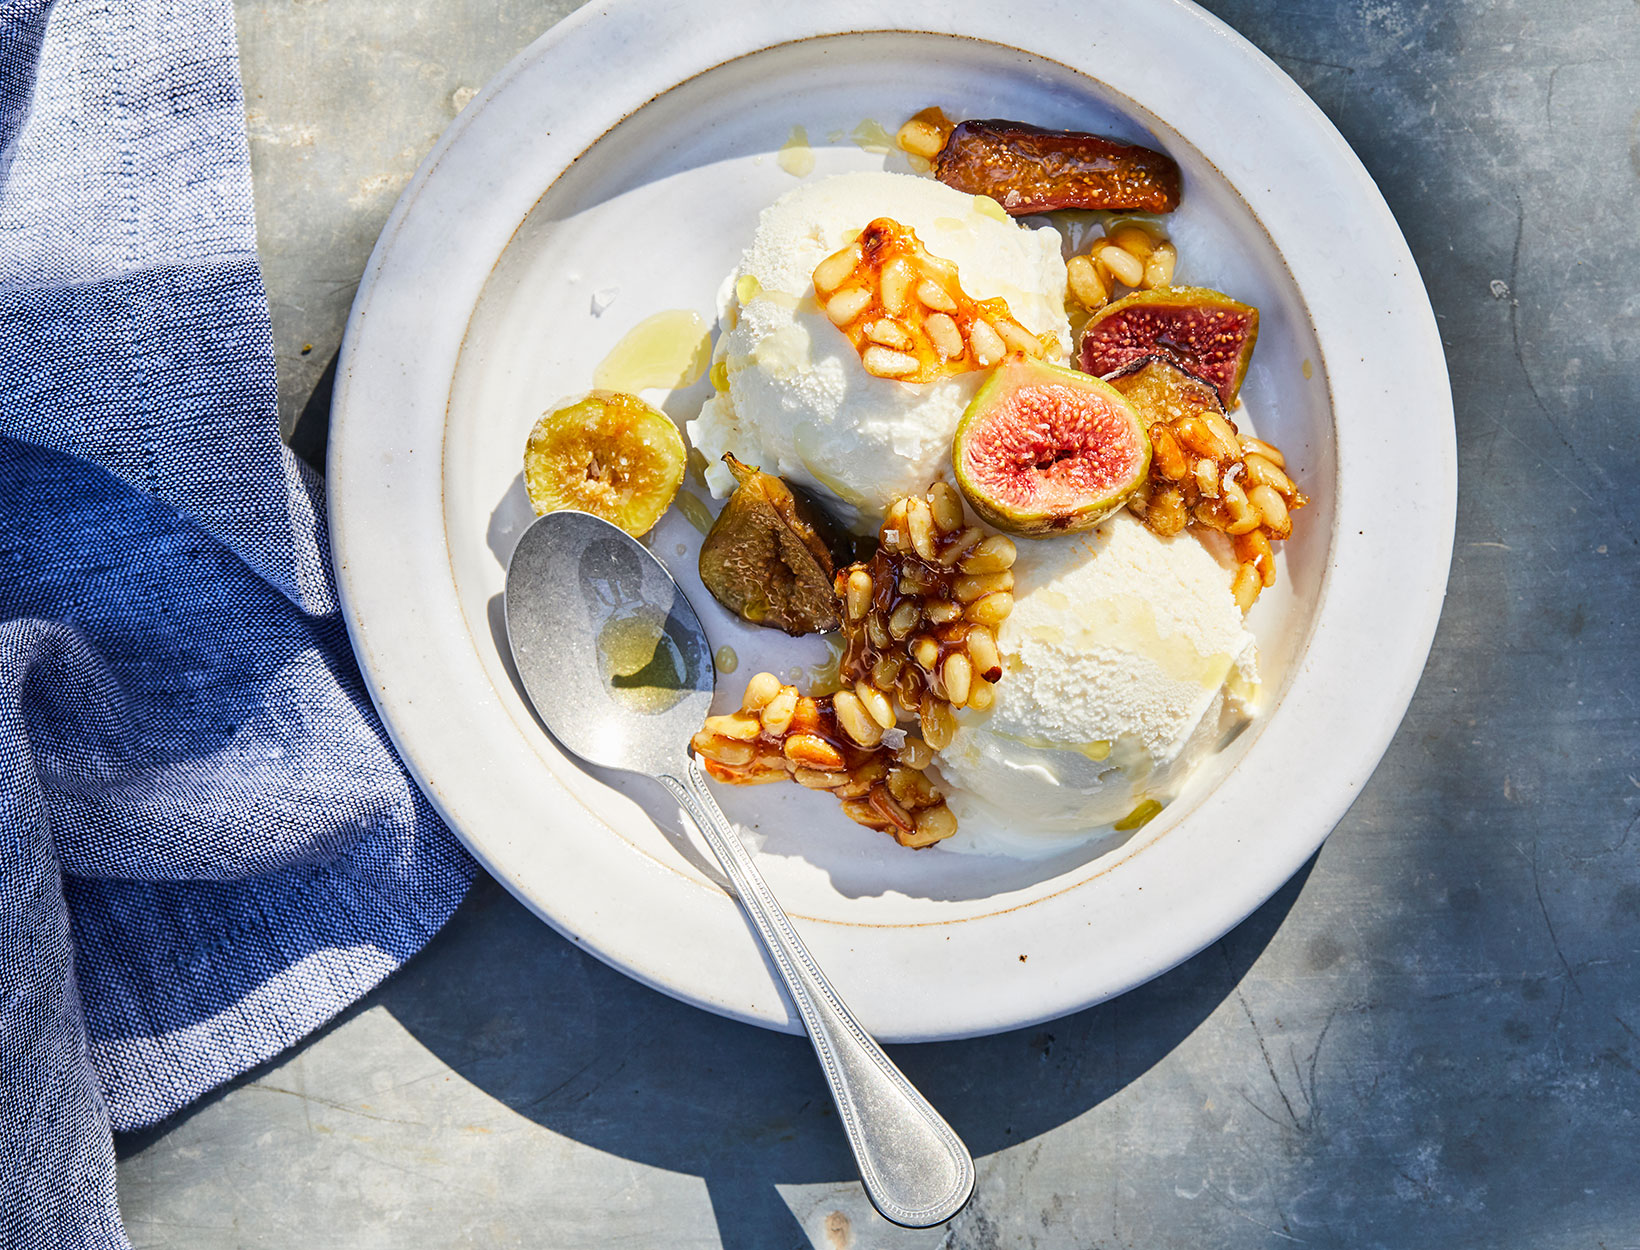 Roasted Figs with Candied Pine Nuts and Vanilla Ice Cream